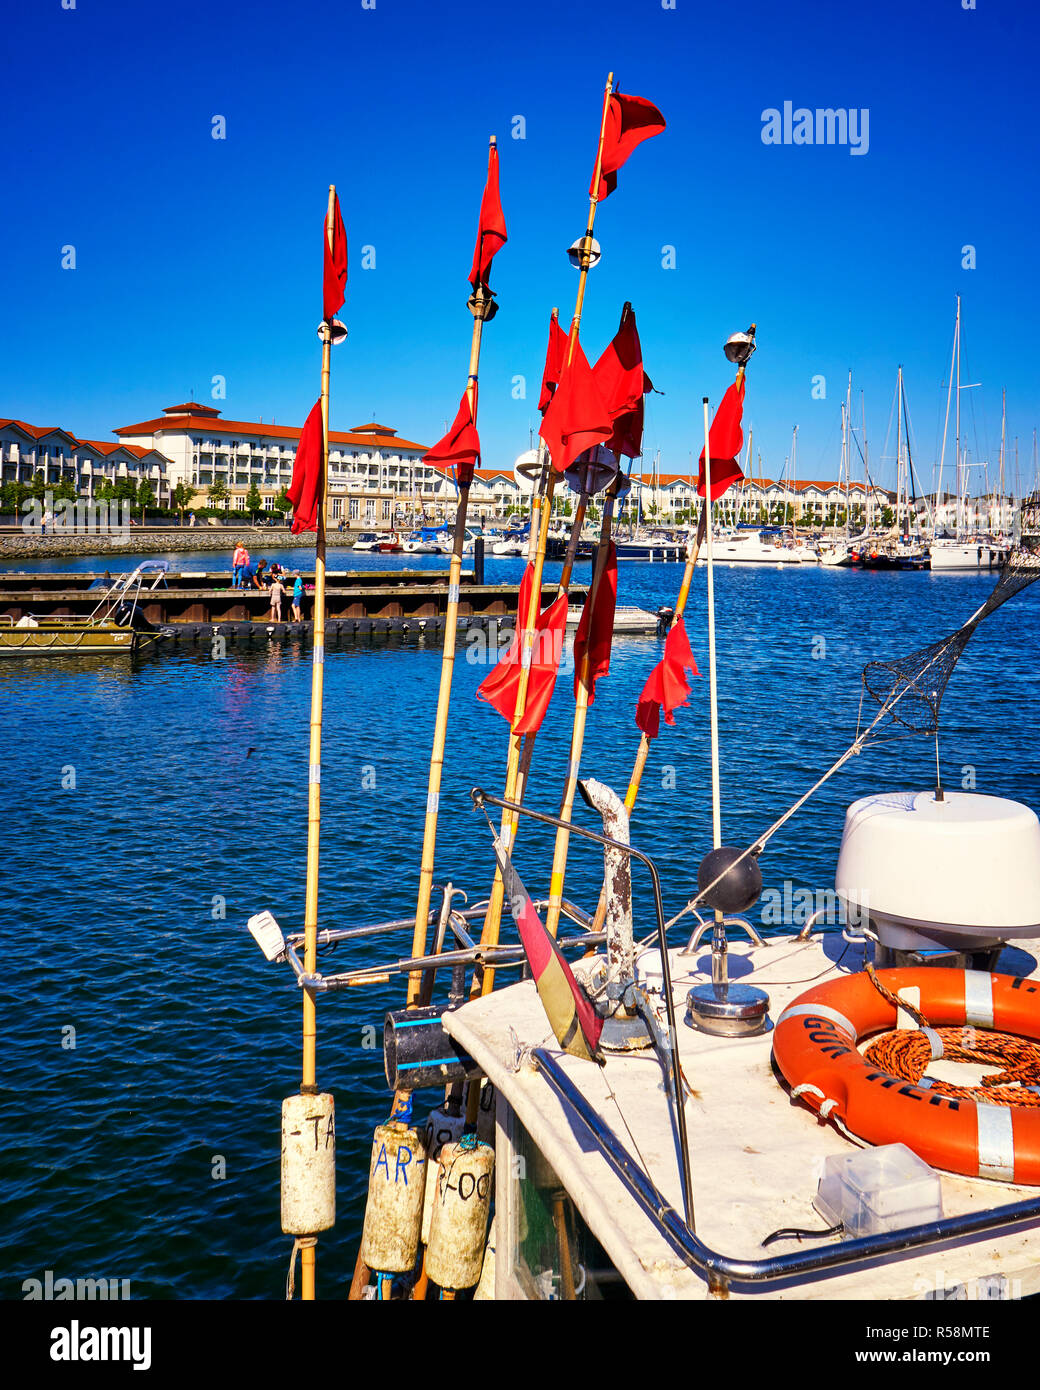 Red flags on the fishing boat in the harbor Weiße Wiek. - Stock Image